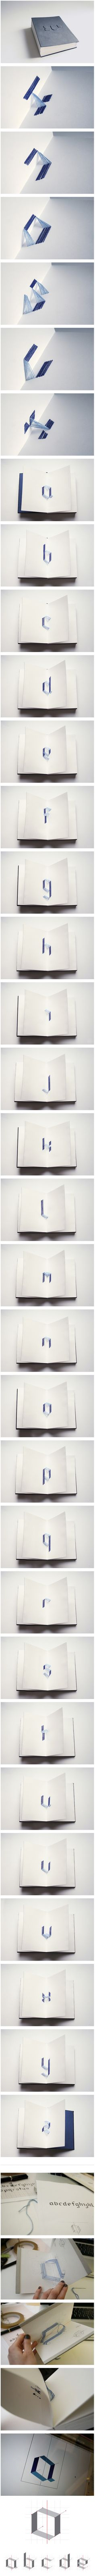 Really cool alphabet book. Thread sewn through pages to make the letters 3D